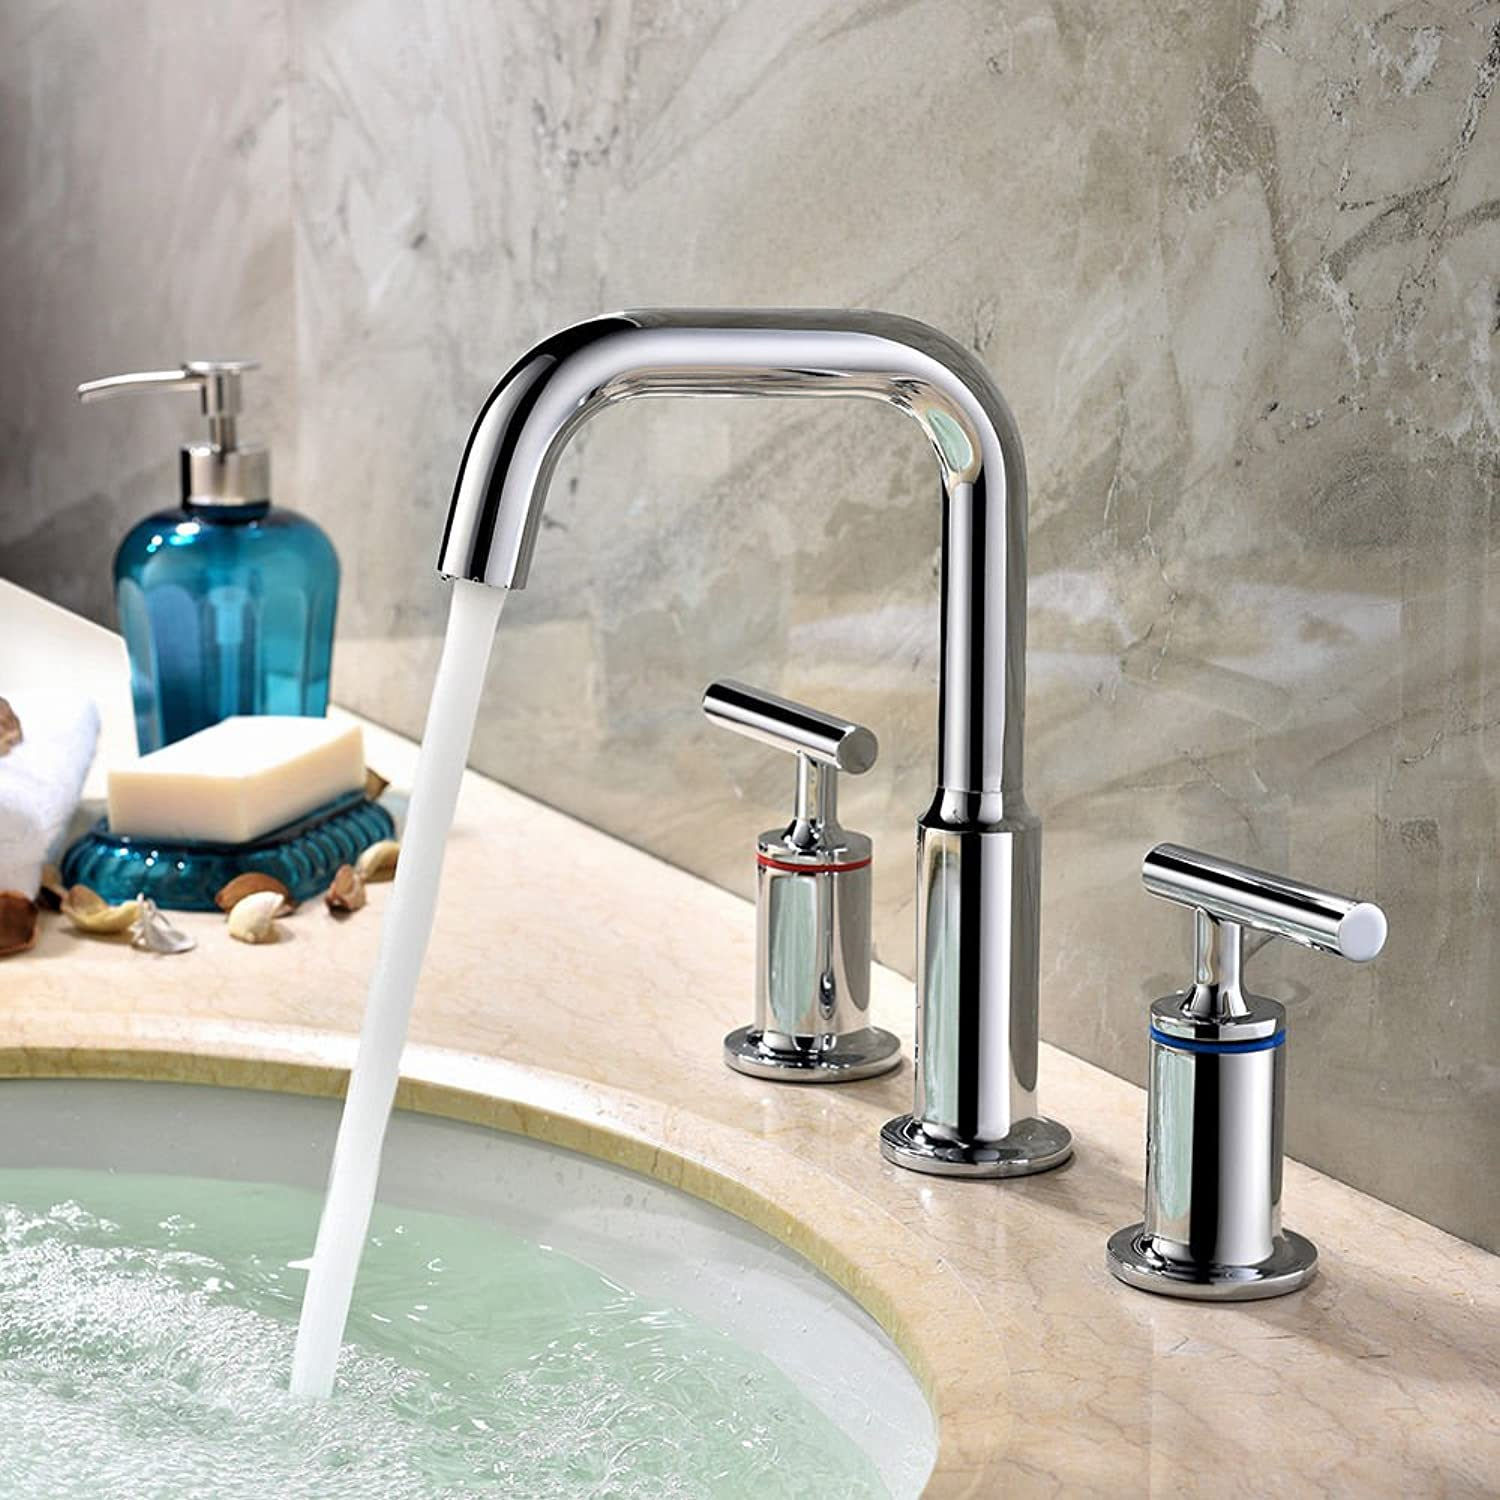 Mangeoo Simple Round Chrome Widespread Bathroom Sink Mixer Faucets Deck Mounted